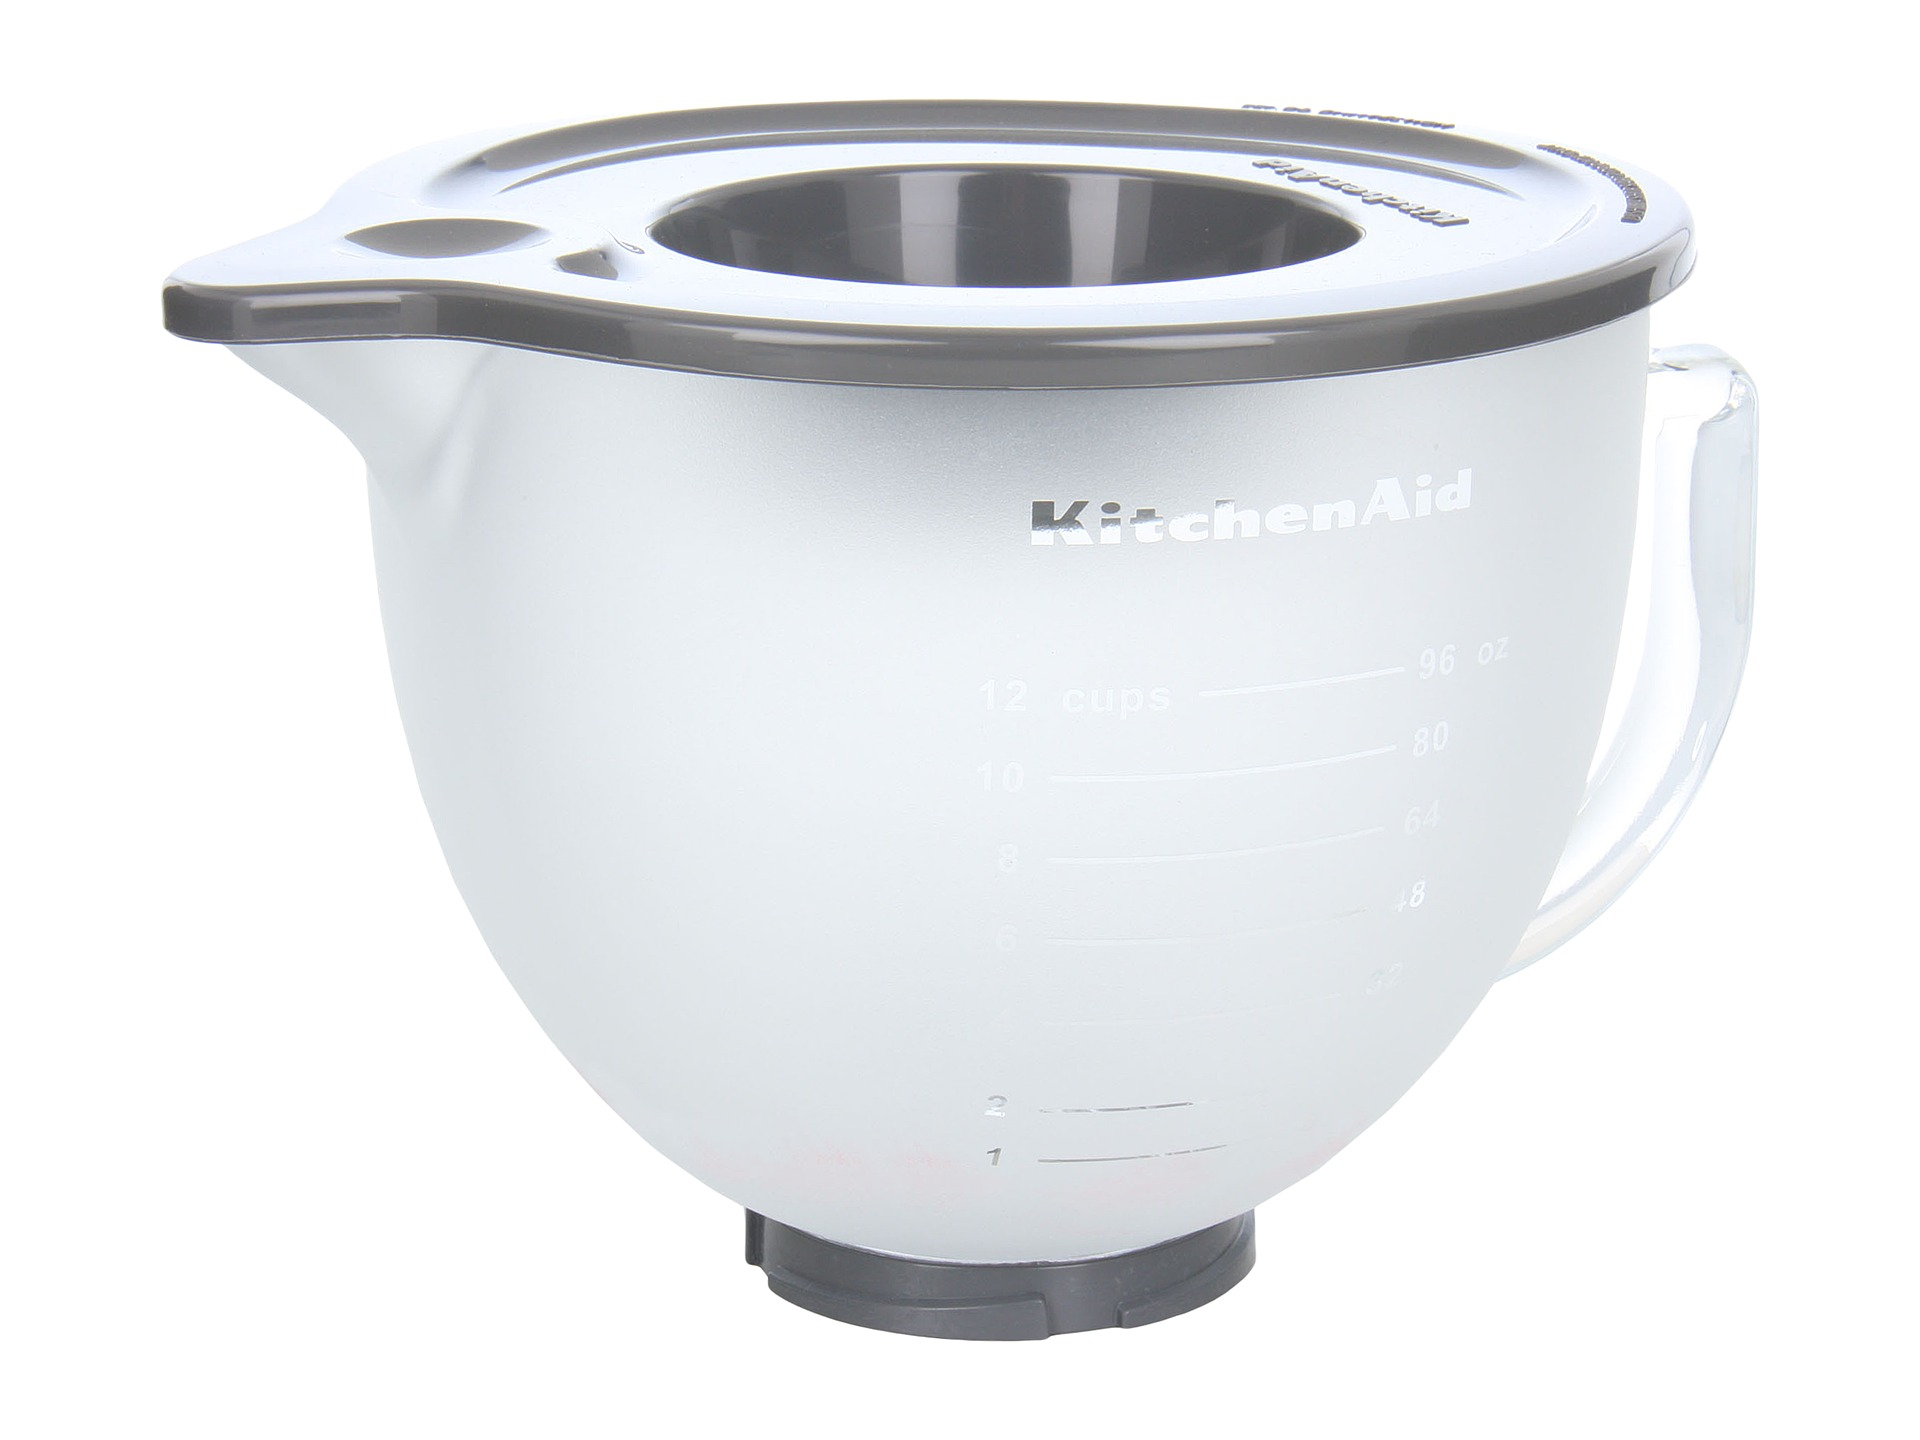 Kitchenaid 5 Qt Frosted Glass Bowl With Pouring Spout Lid Shipped Free At Zappos